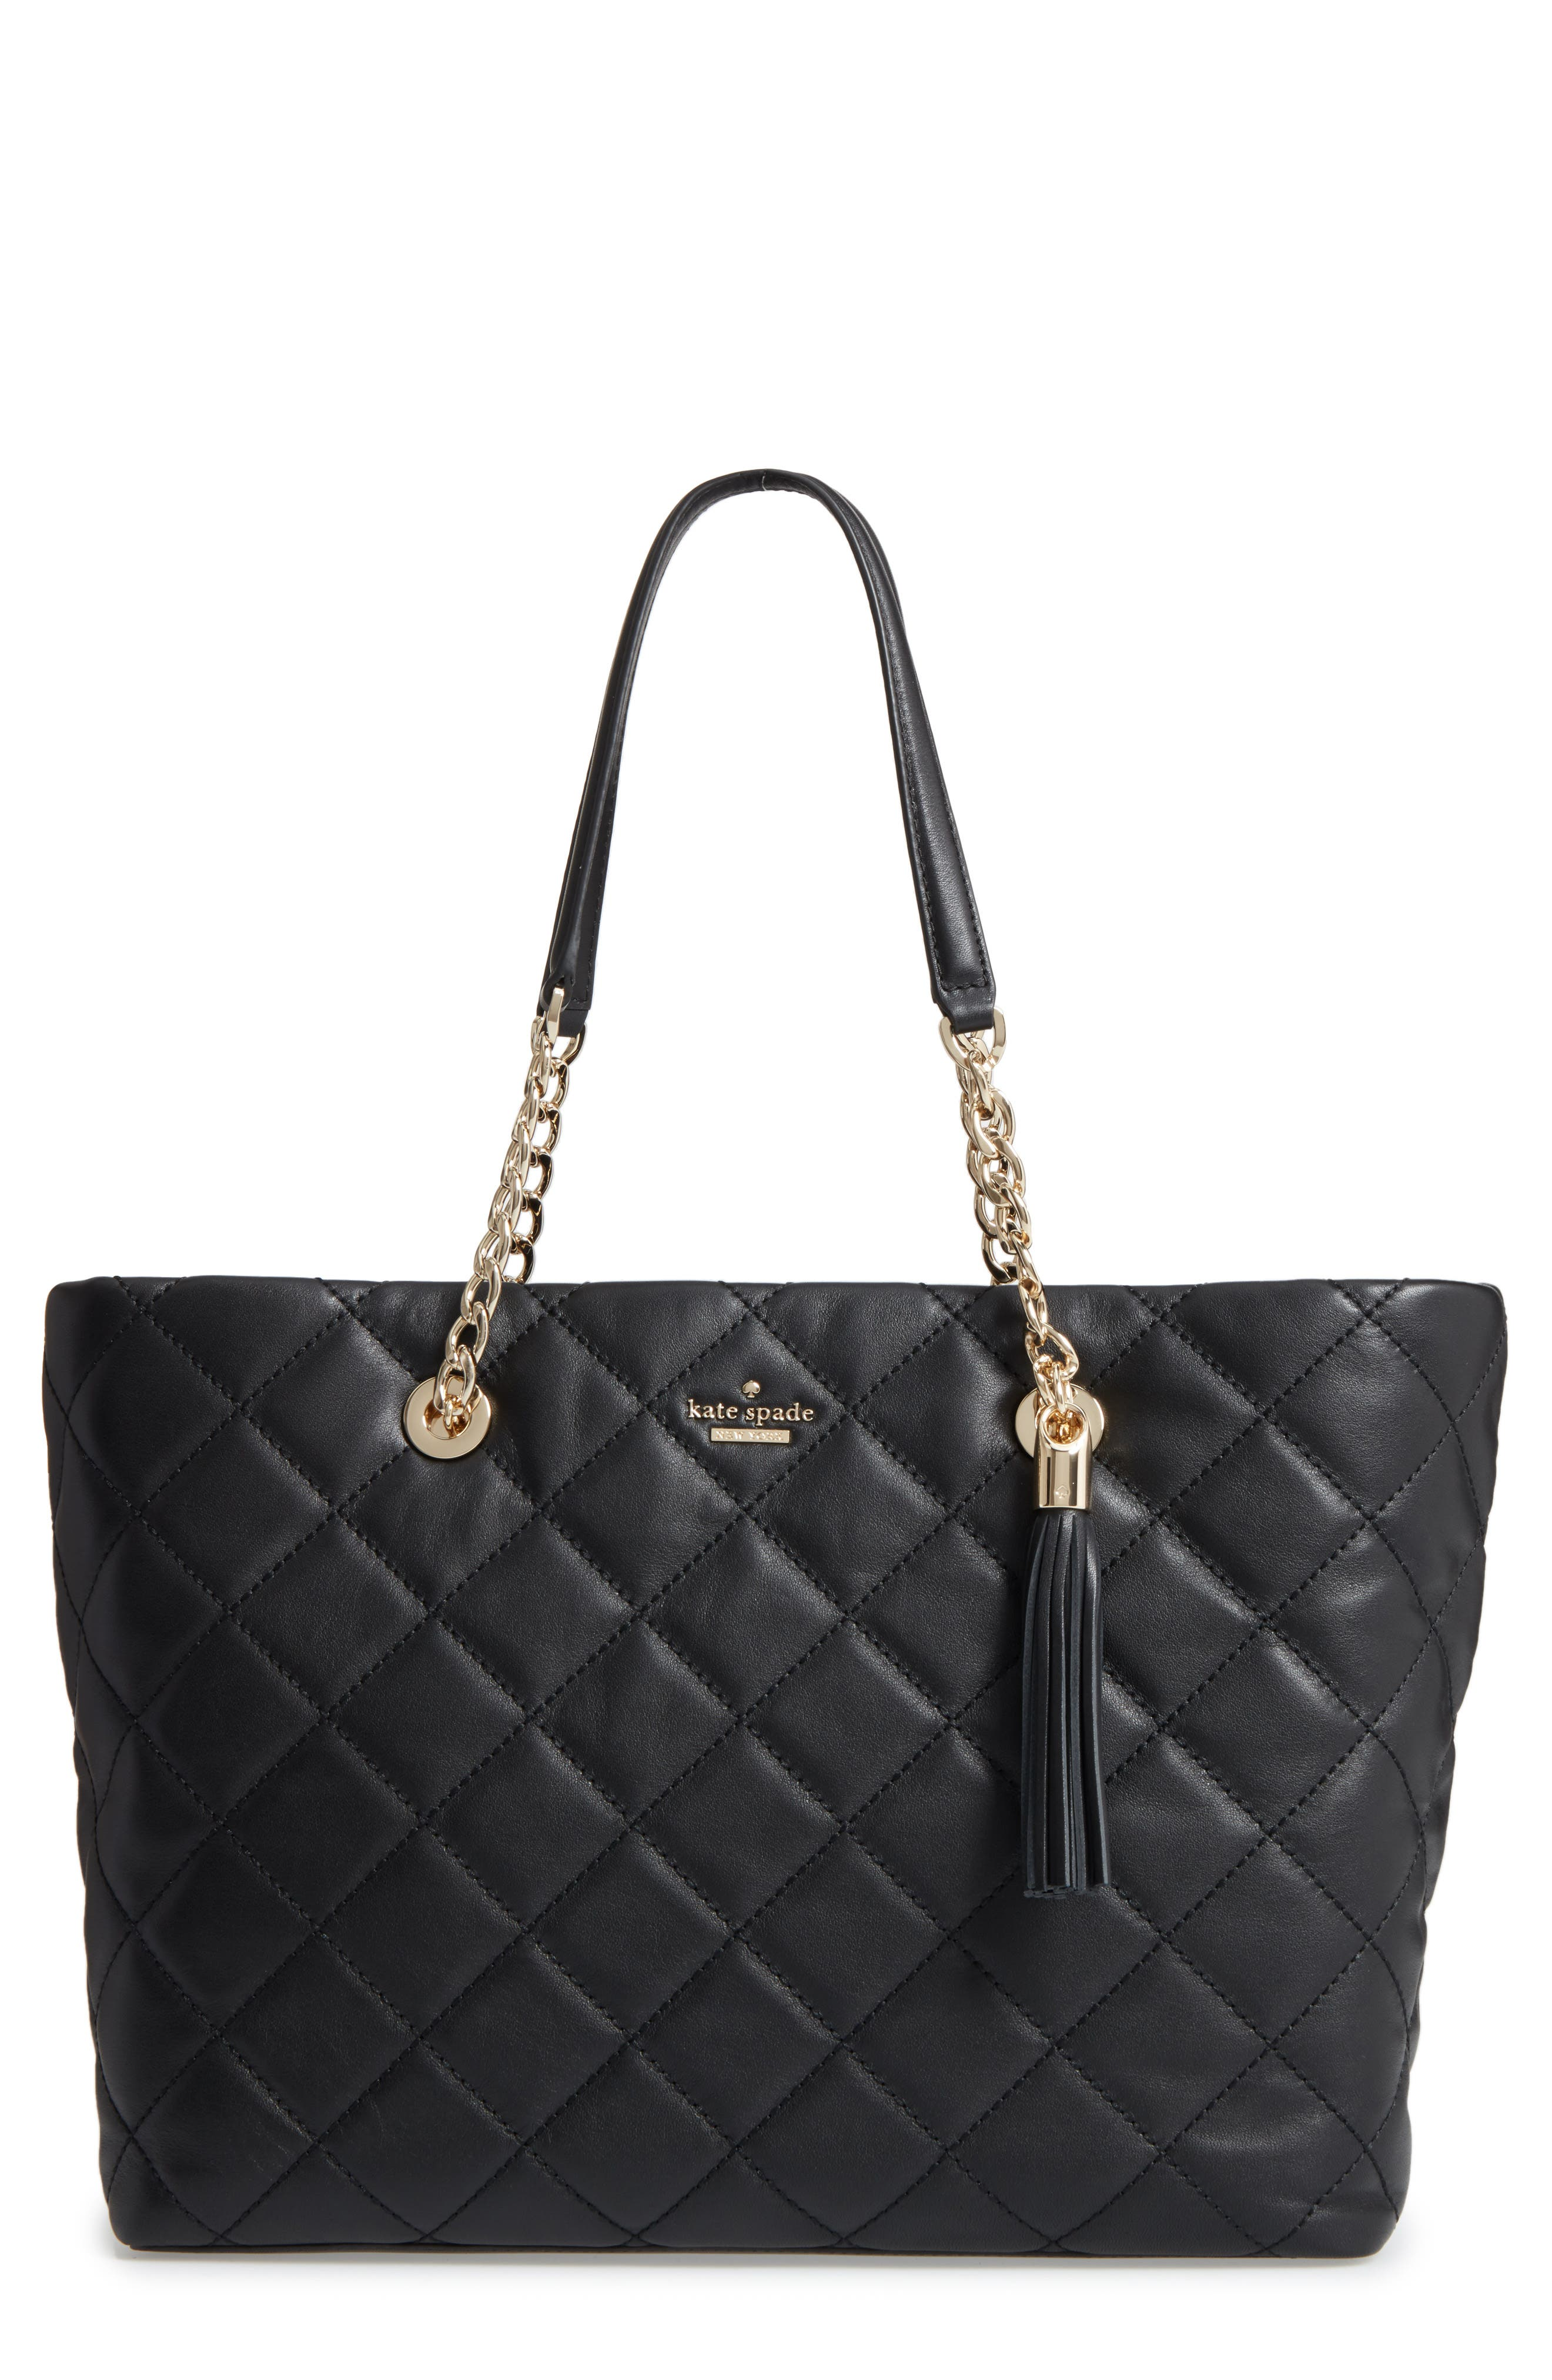 emerson place - priya quilted leather tote,                             Main thumbnail 1, color,                             001